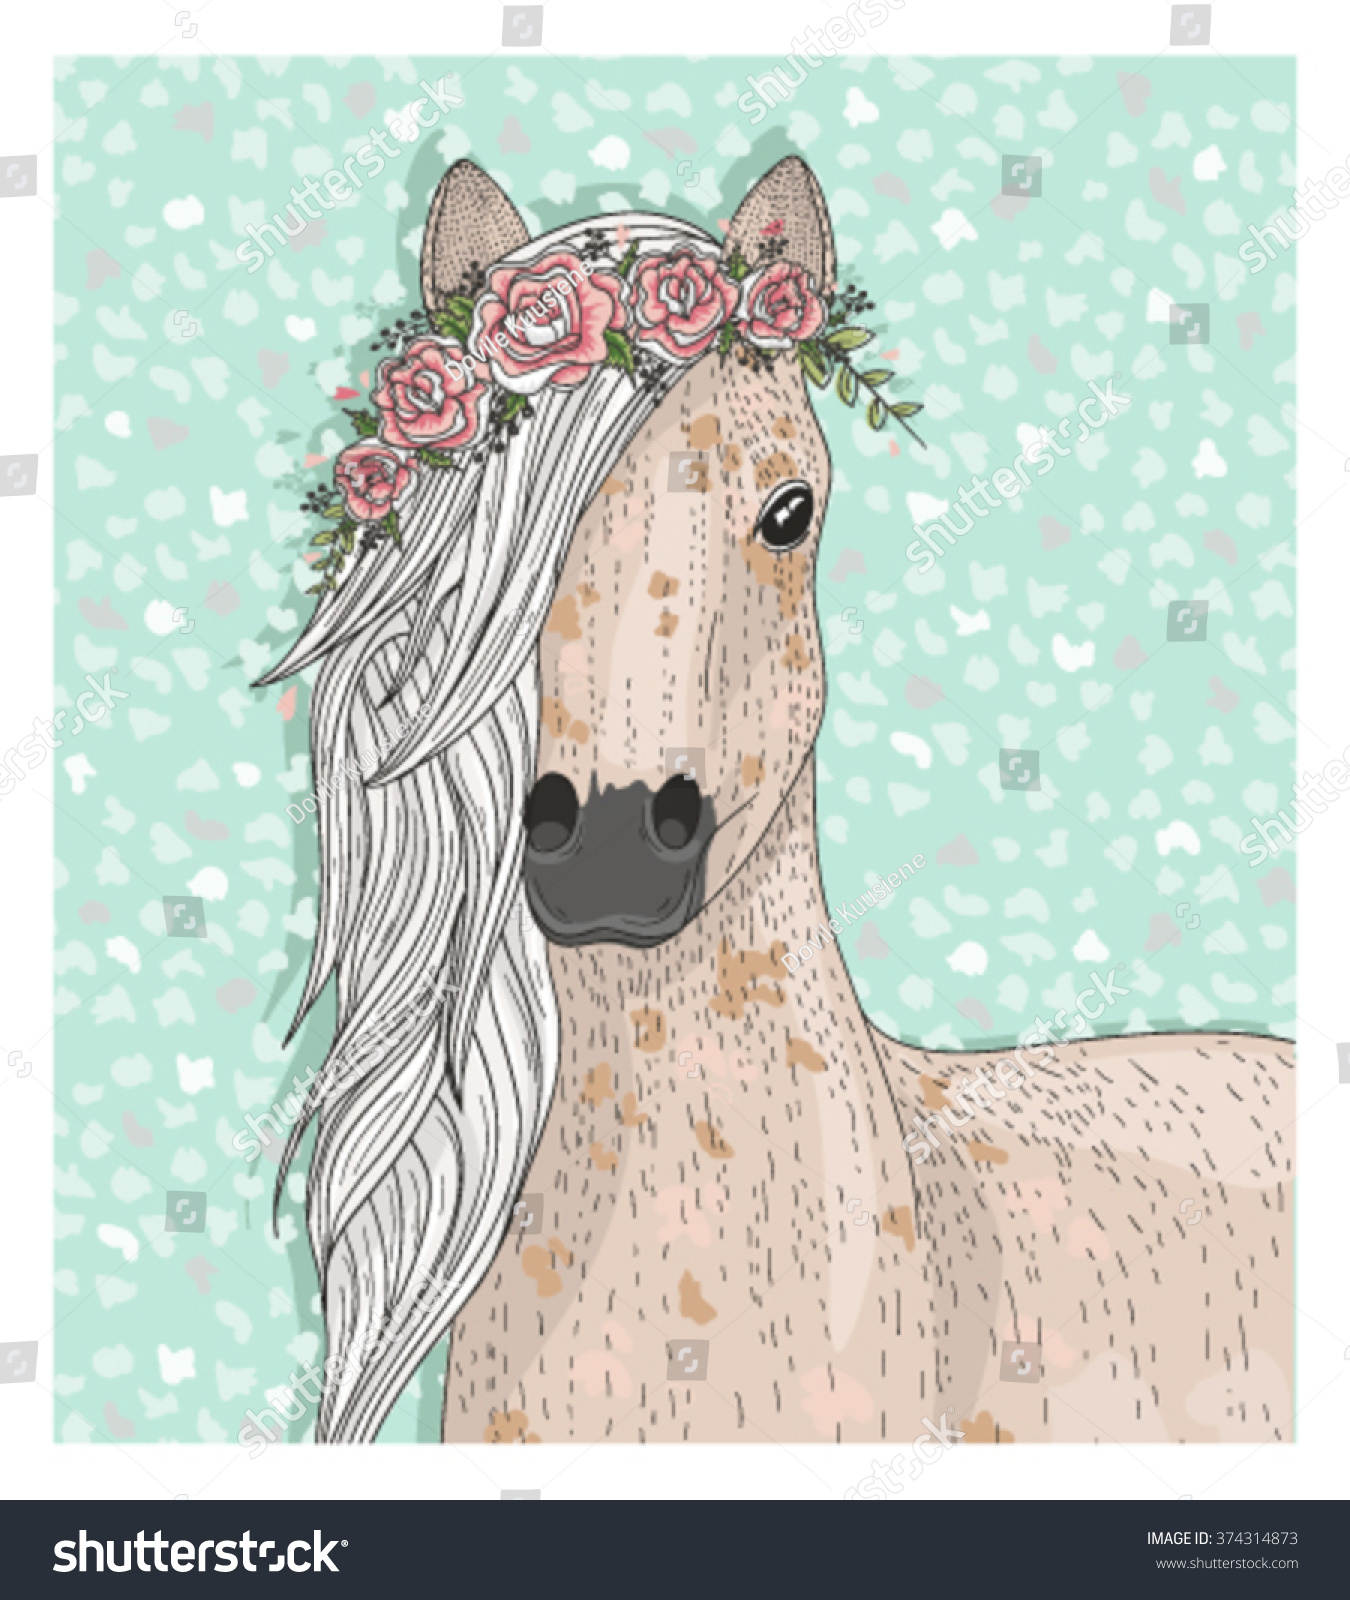 Cute Horse Flowers Fairytale Background Stock Vector Royalty Free 374314873